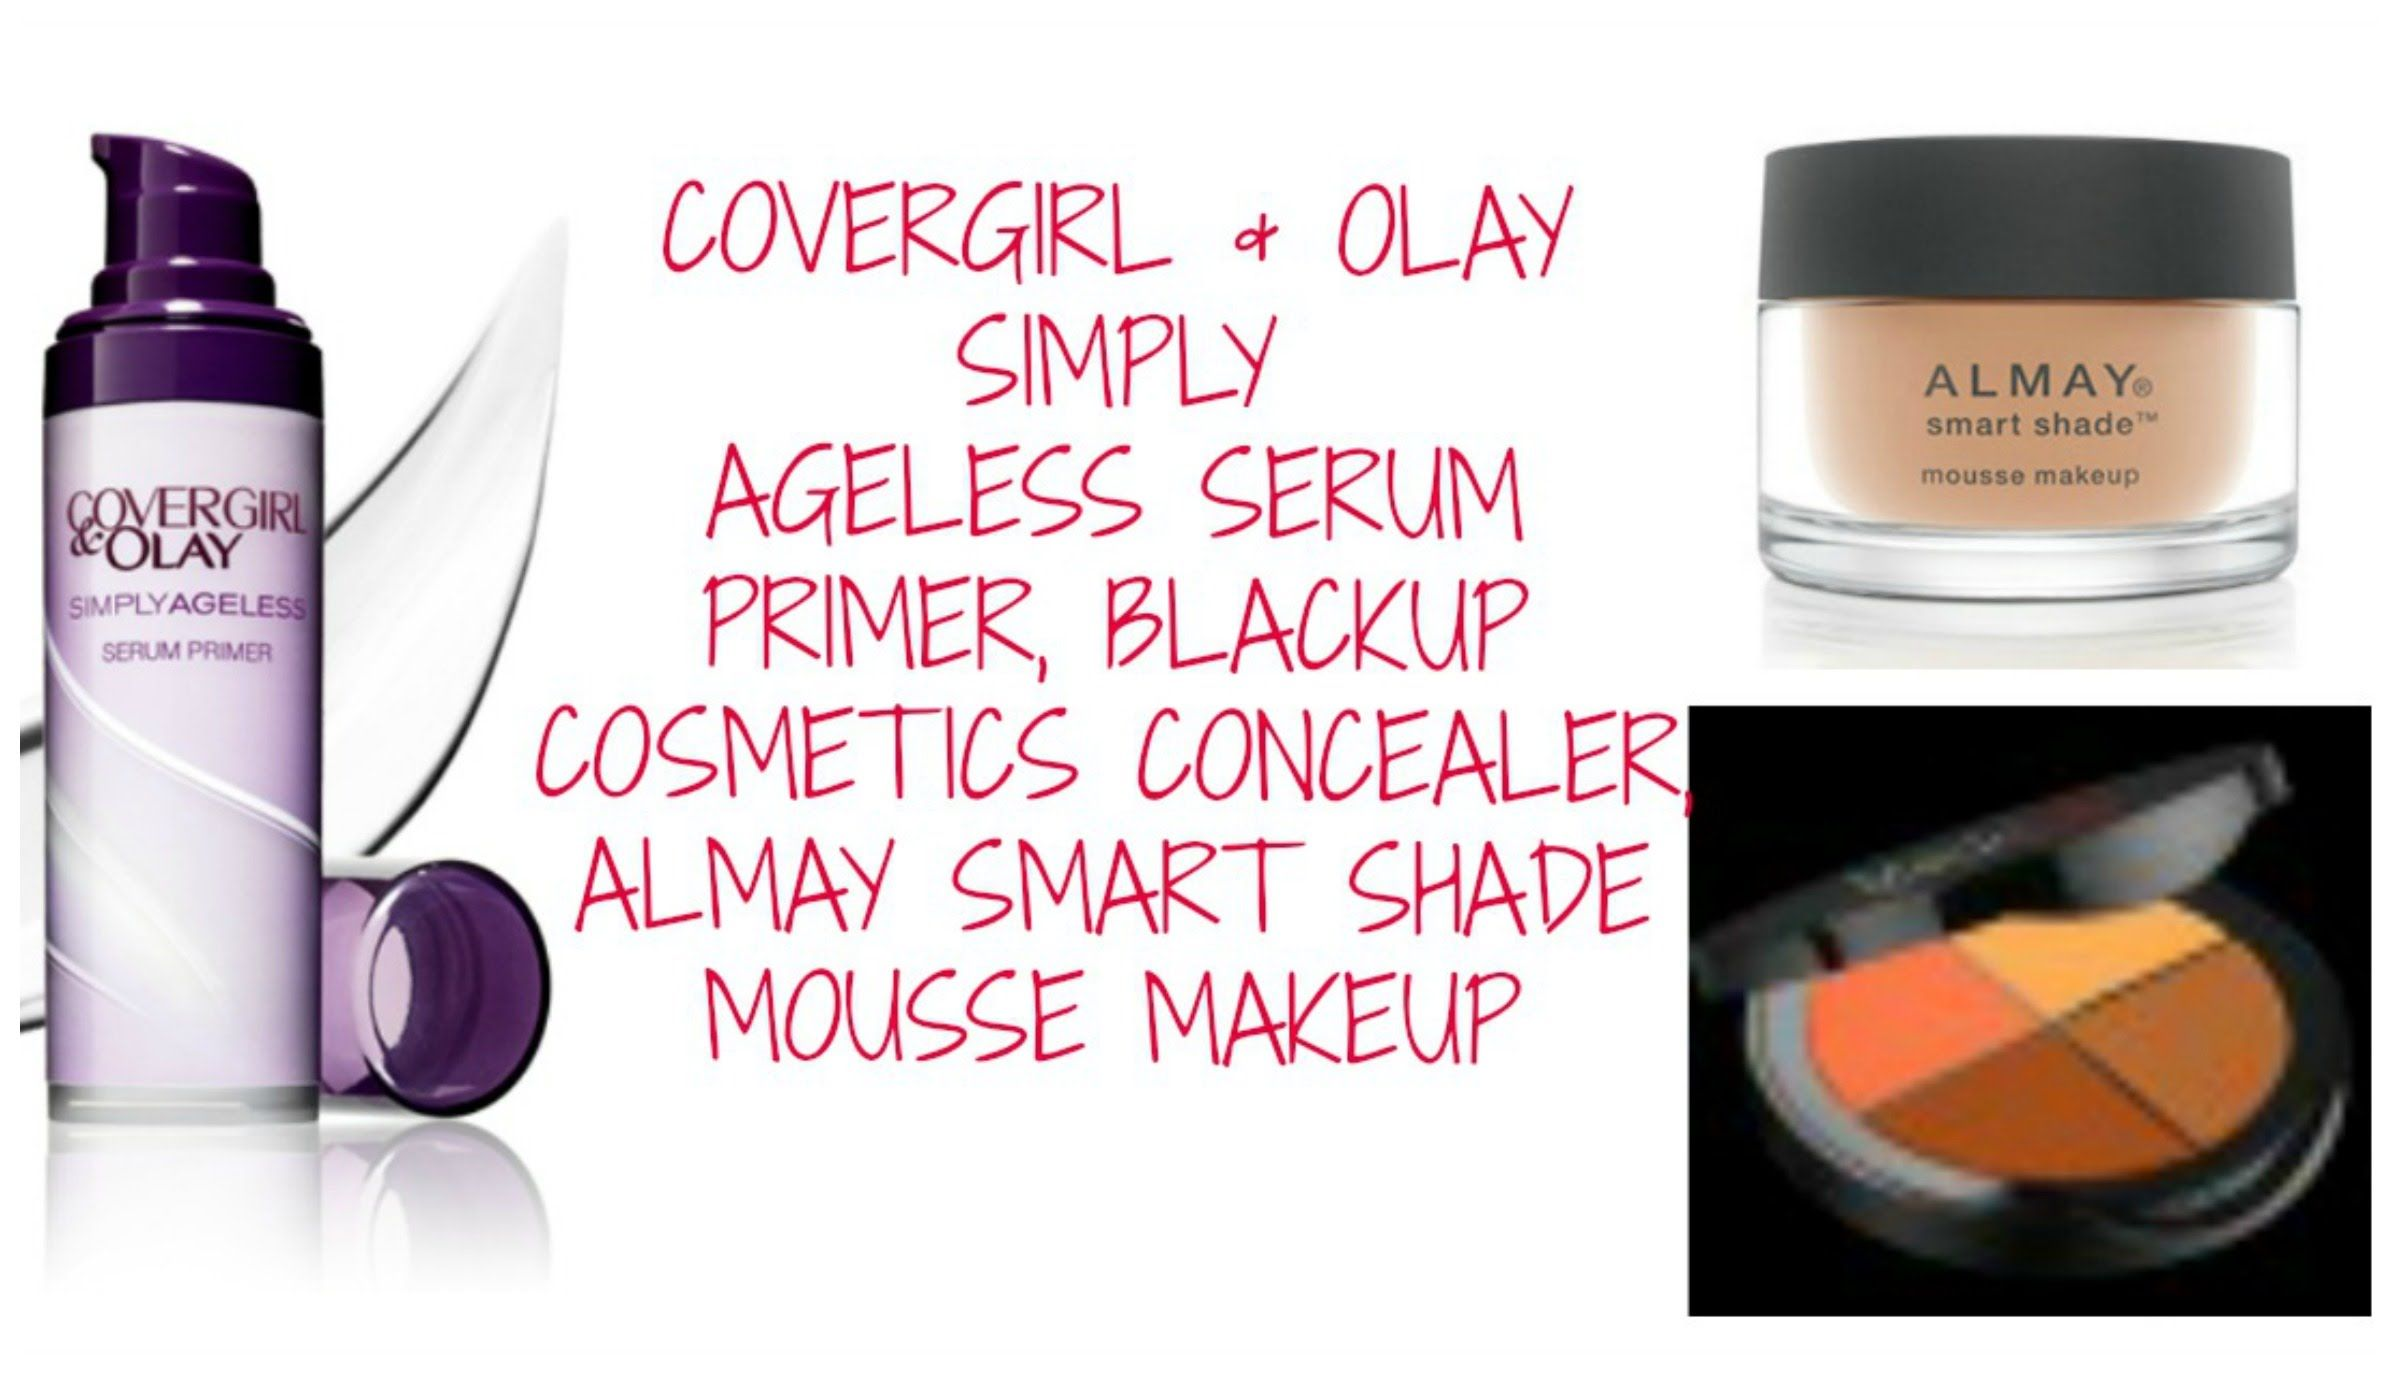 COVERGIRL + OLAY SIMPLY AGELESS SERUM PRIMER, BLACKUP